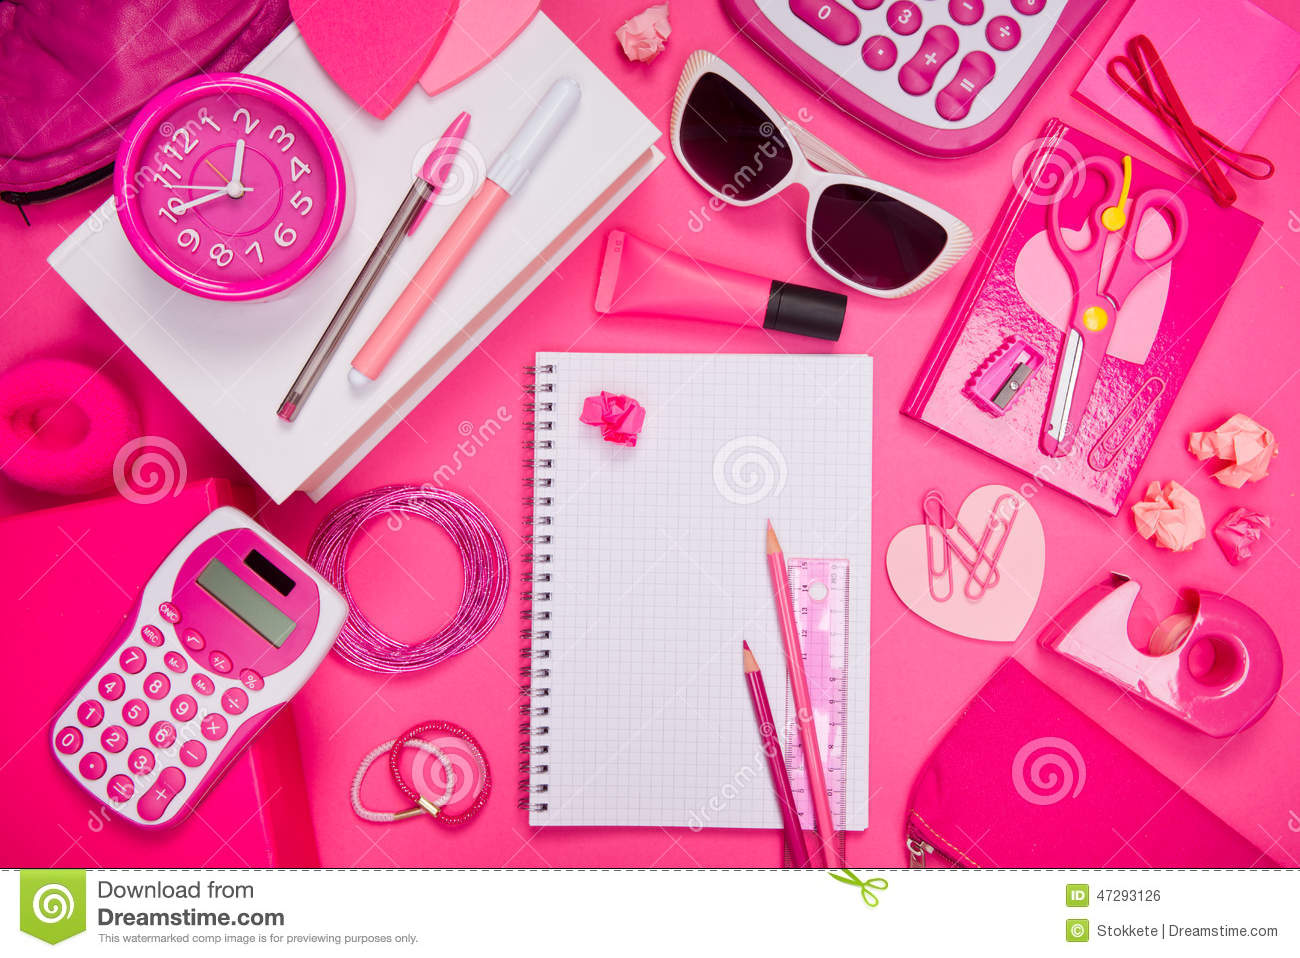 Girly pink desk...